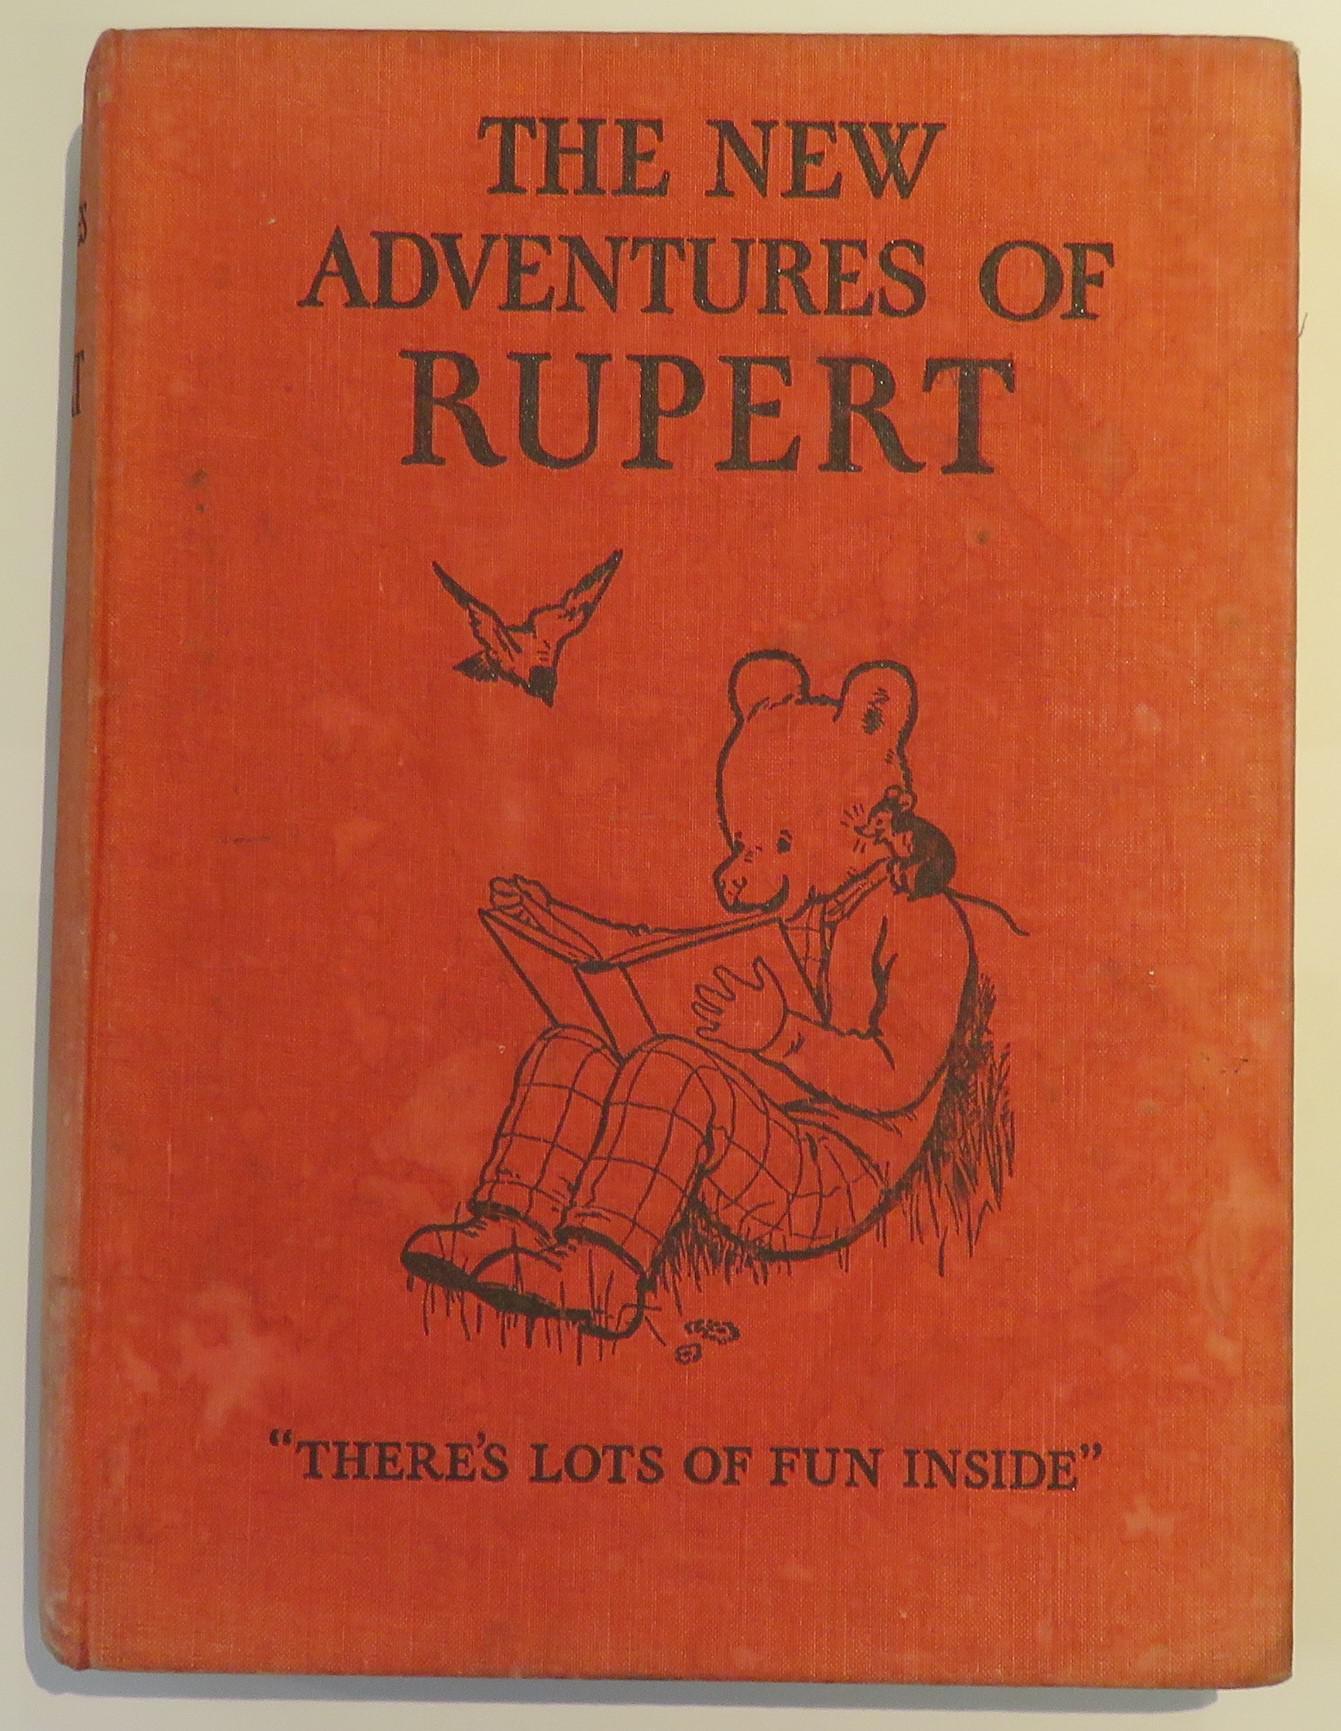 The New Adventures of Rupert 1936